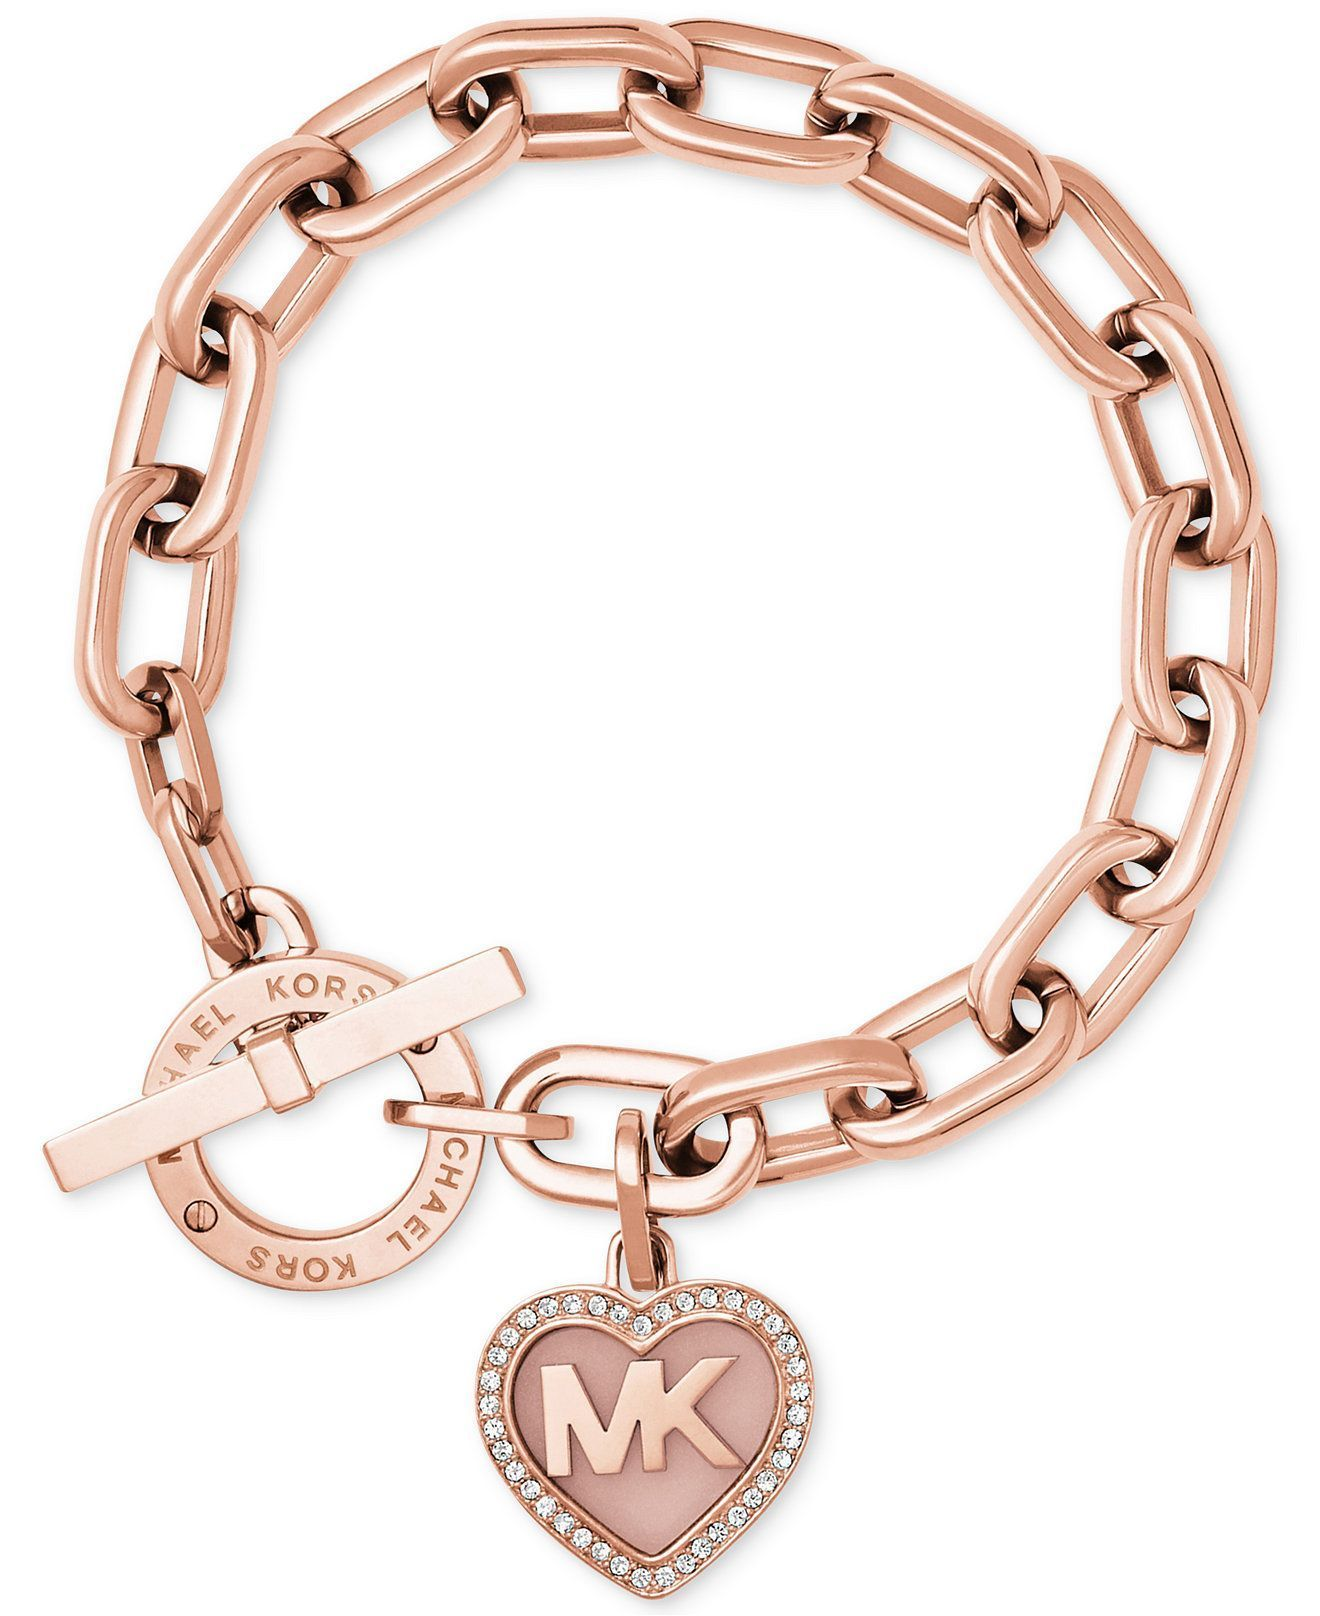 Michael Kors Rose Gold Tone Pave Logo Heart Toggle Bracelet Jewelry Watches Macy S Gol Michael Kors Bracelet Michael Kors Jewelry Michael Kors Rose Gold